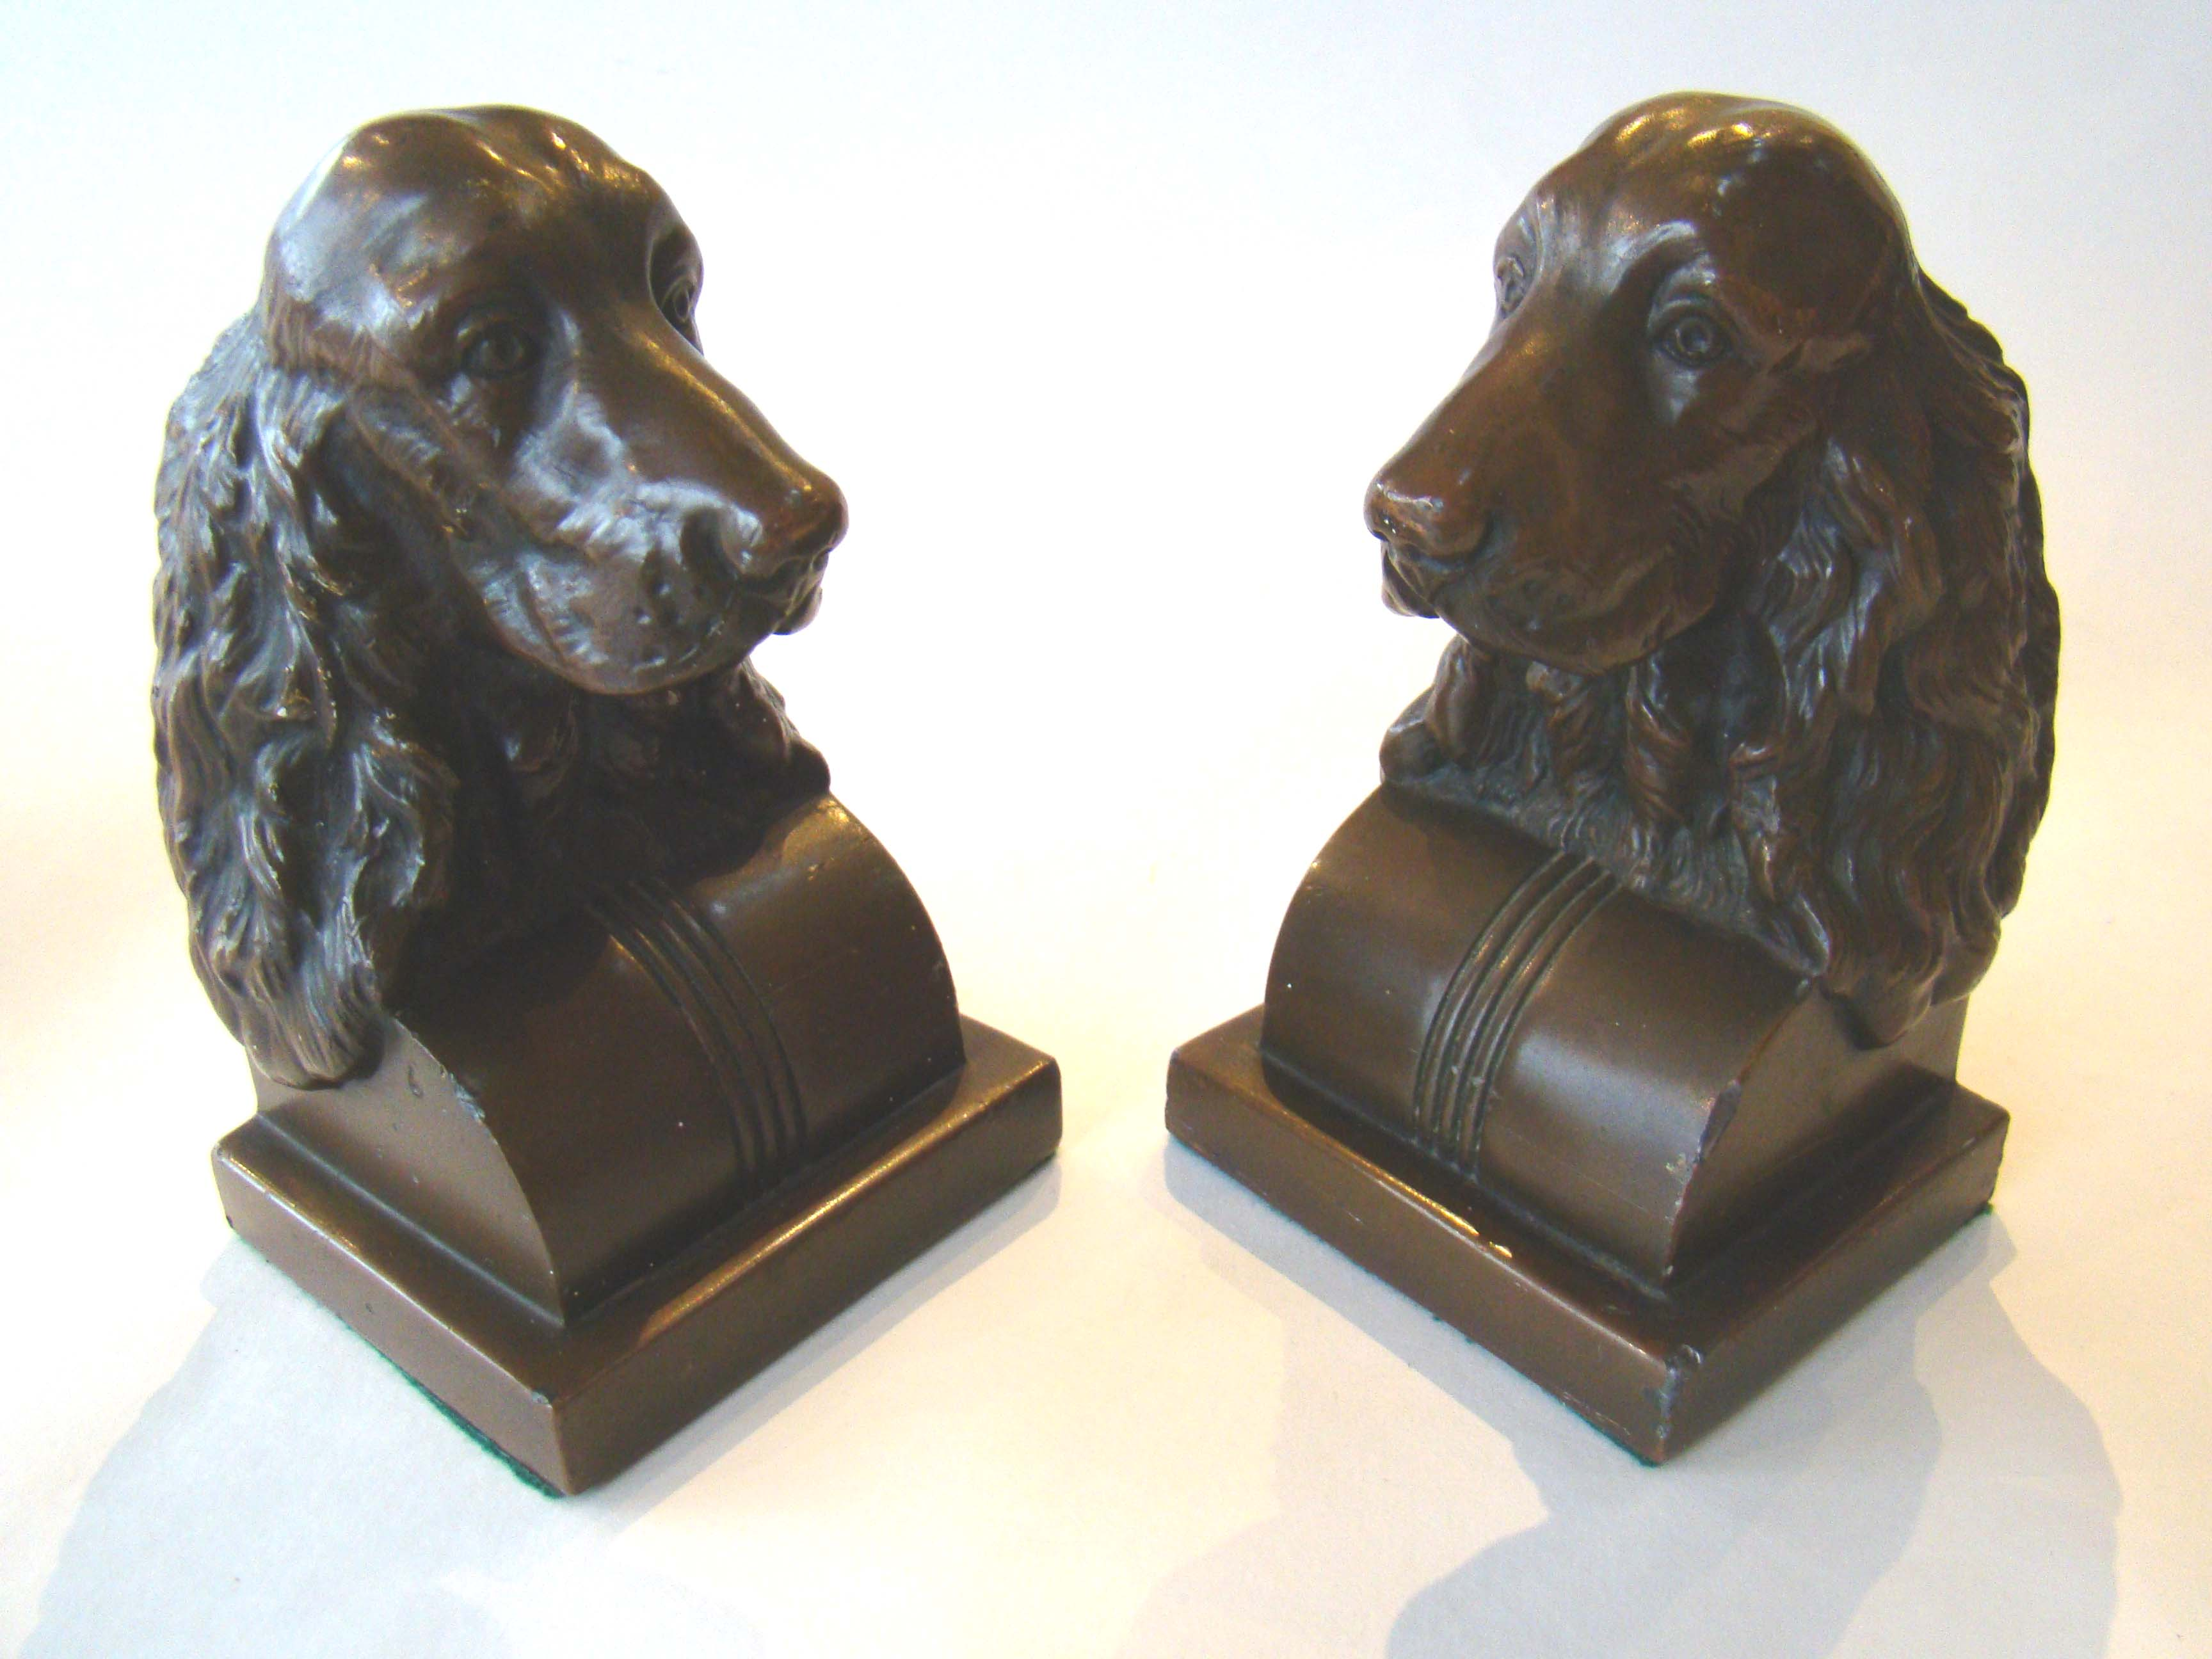 click to view detailed description of A pair of vintage Spaniel bookends by Jennings Brothers circa 1935